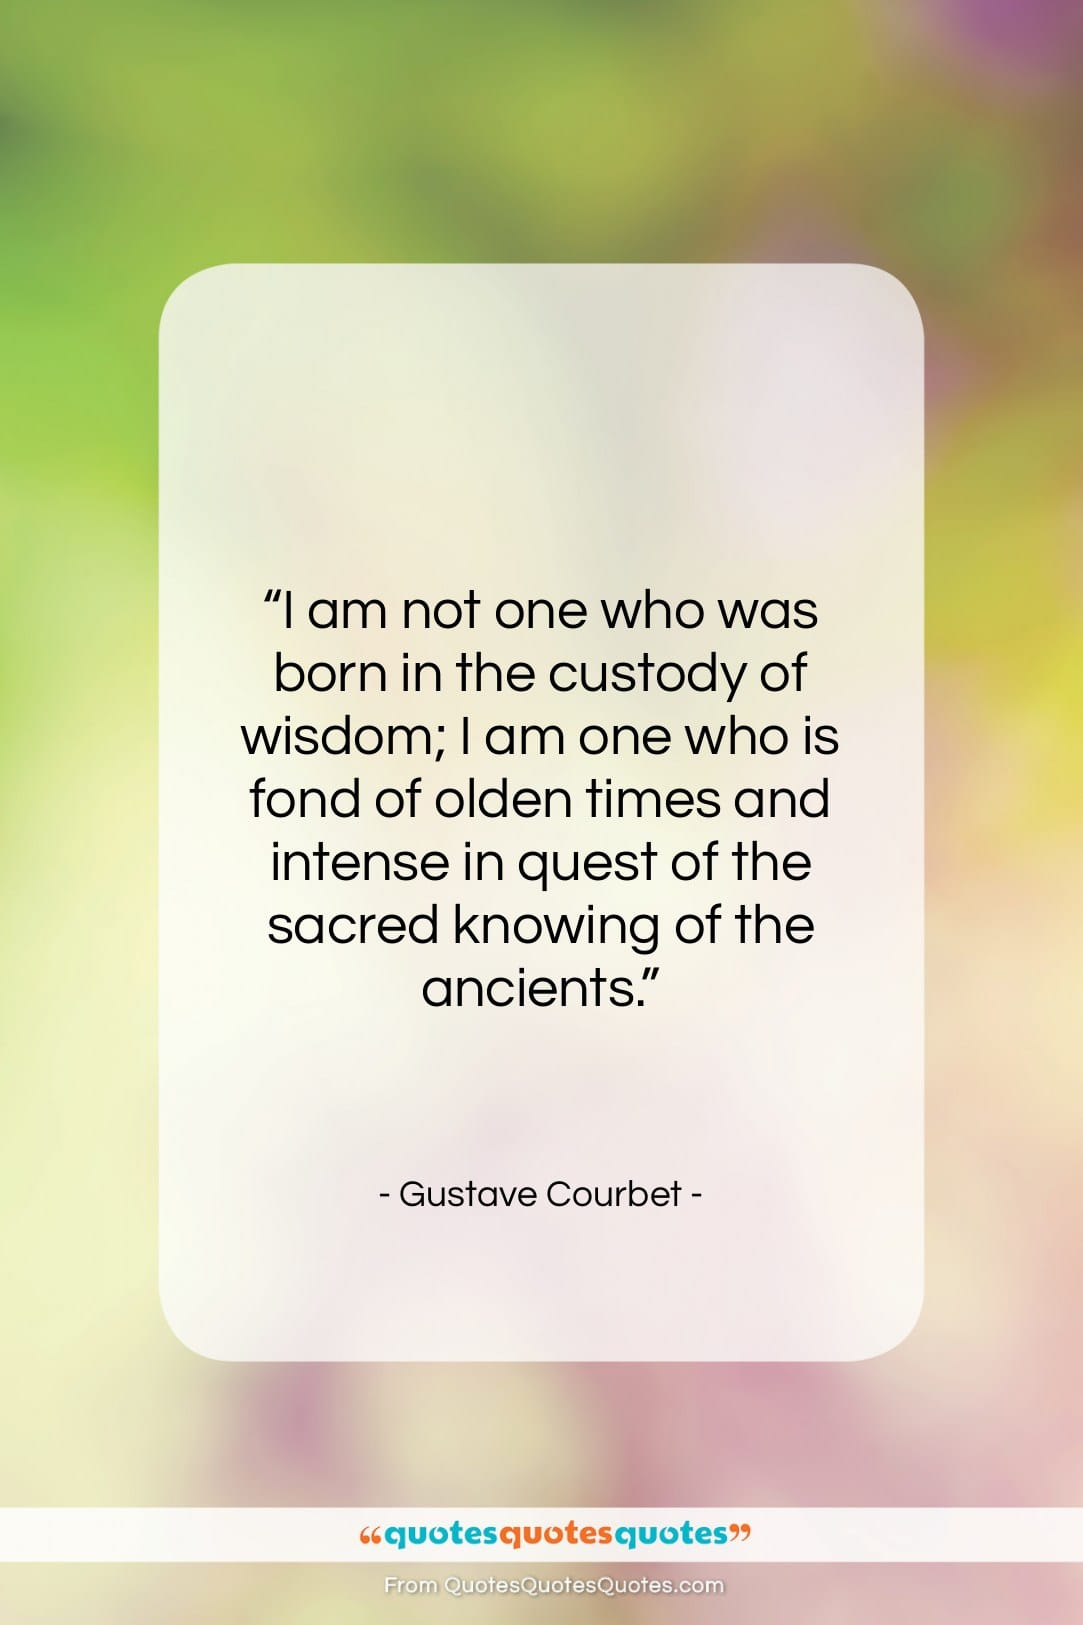 """Gustave Courbet quote: """"I am not one who was born…""""- at QuotesQuotesQuotes.com"""